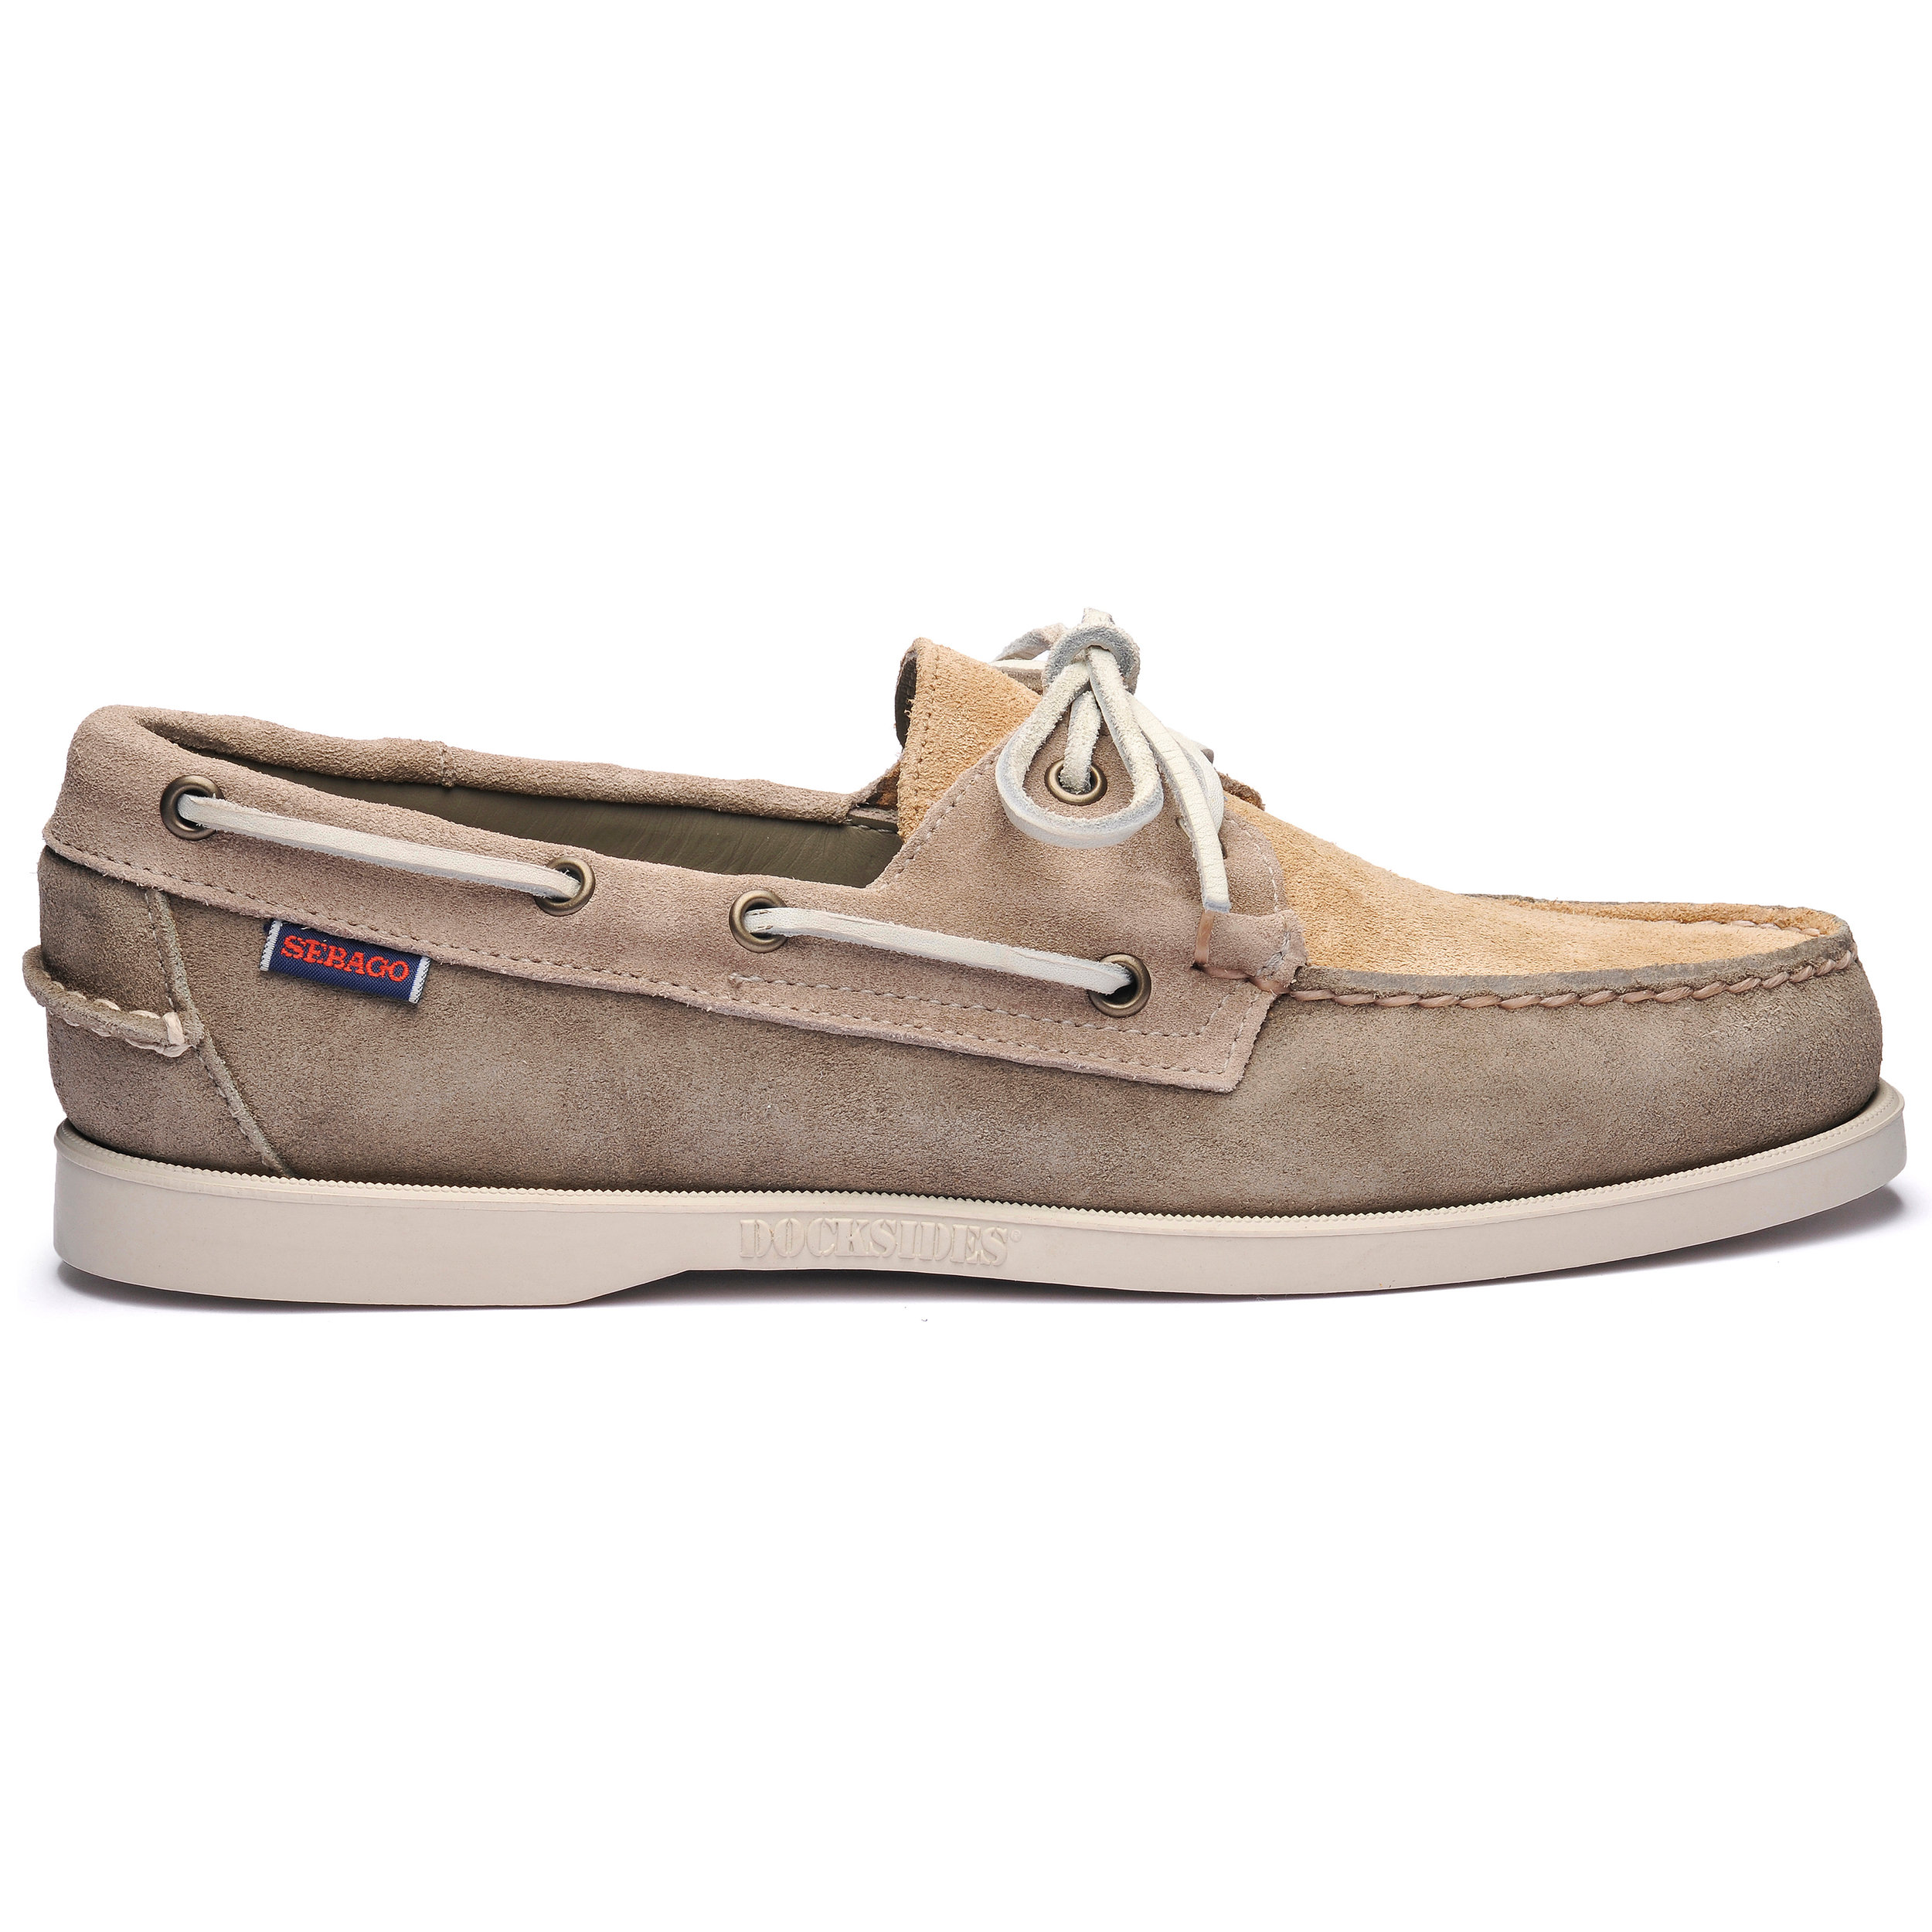 Sebago boat shoes - £115 - Boat shoes are a staple for spring and summer and these hit all the right notes with the light shade and suede fabric